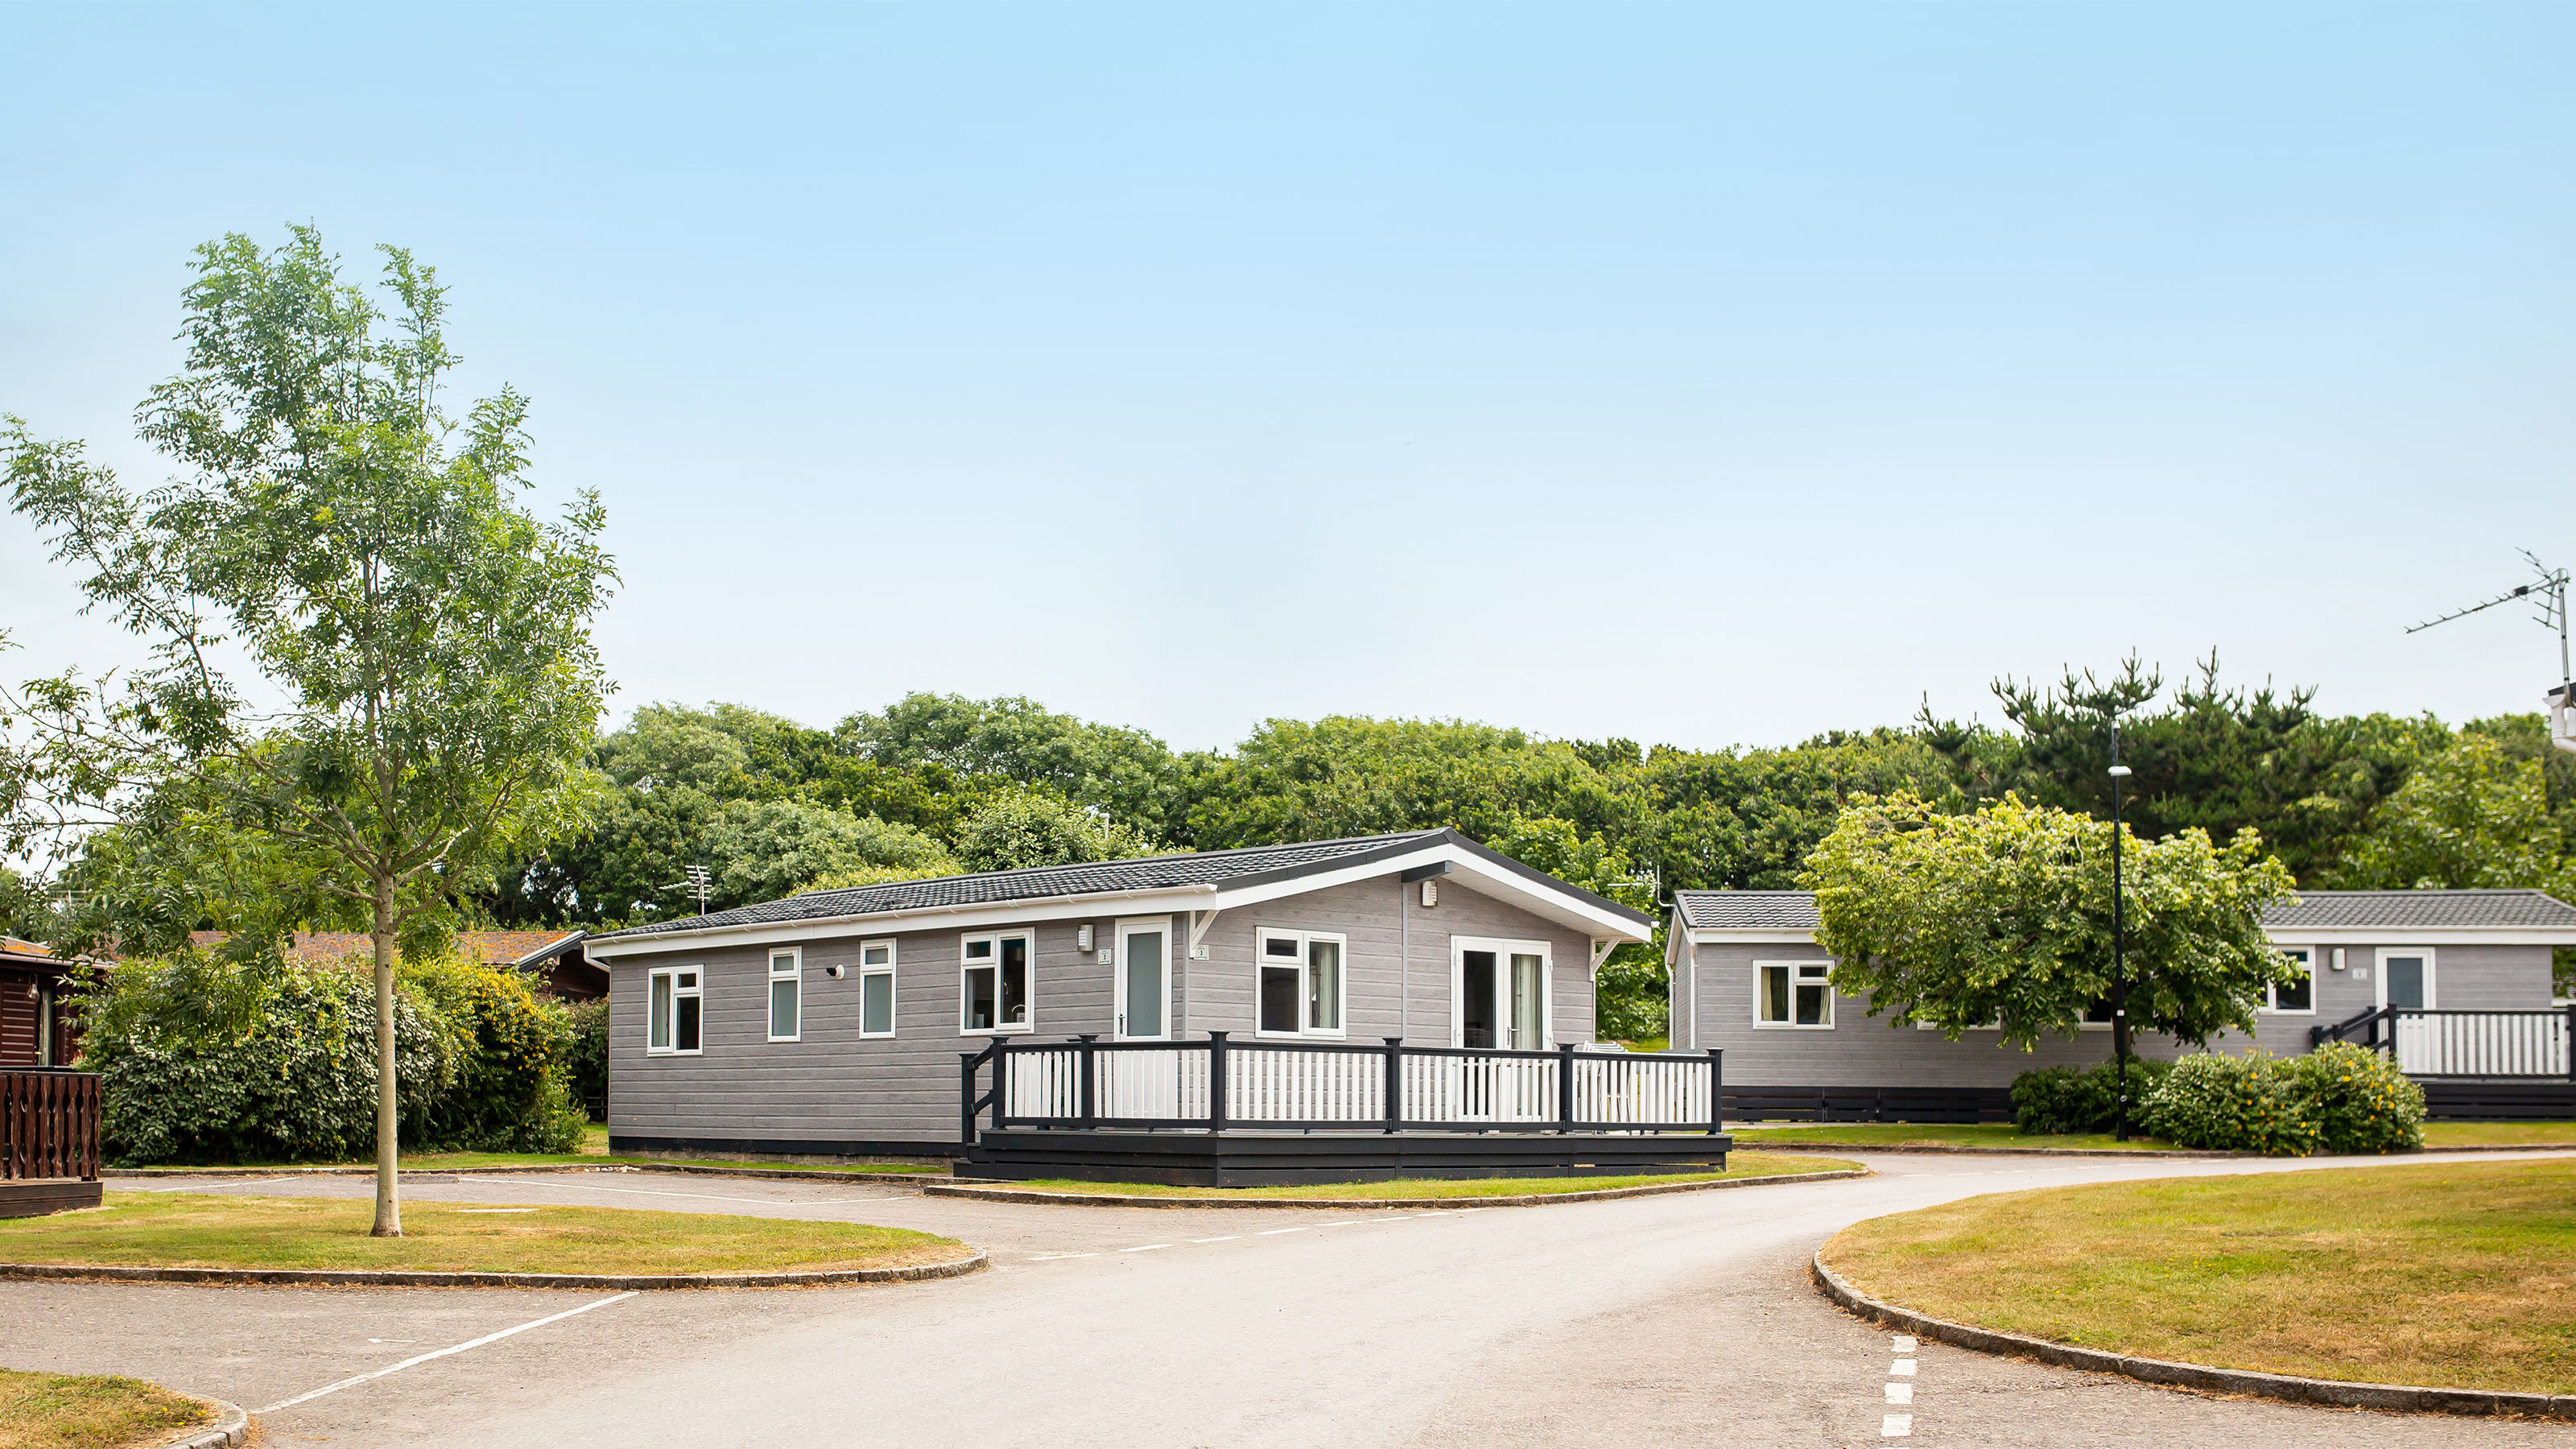 Select plus lodges at Shorefield Country Park in Milford on Sea